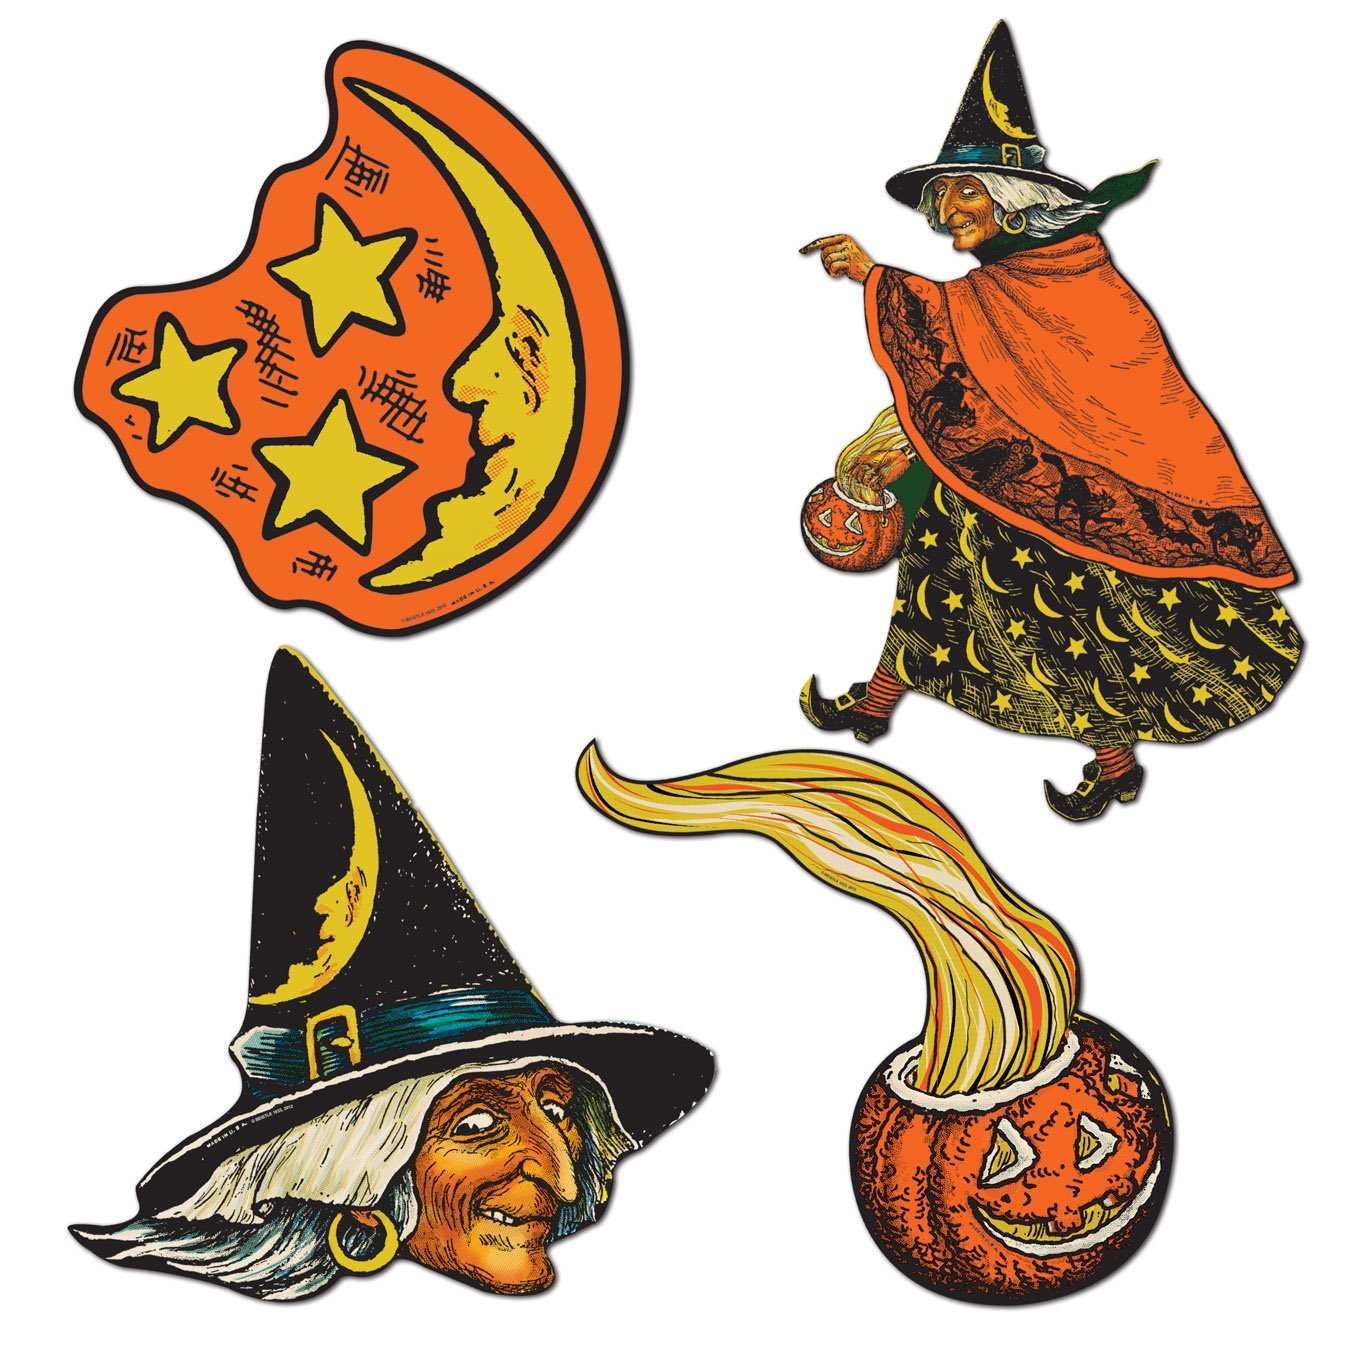 Amazon.com: Beistle 4-Pack Halloween Cutouts, 6-1/2-Inch to 10-1/2 ...